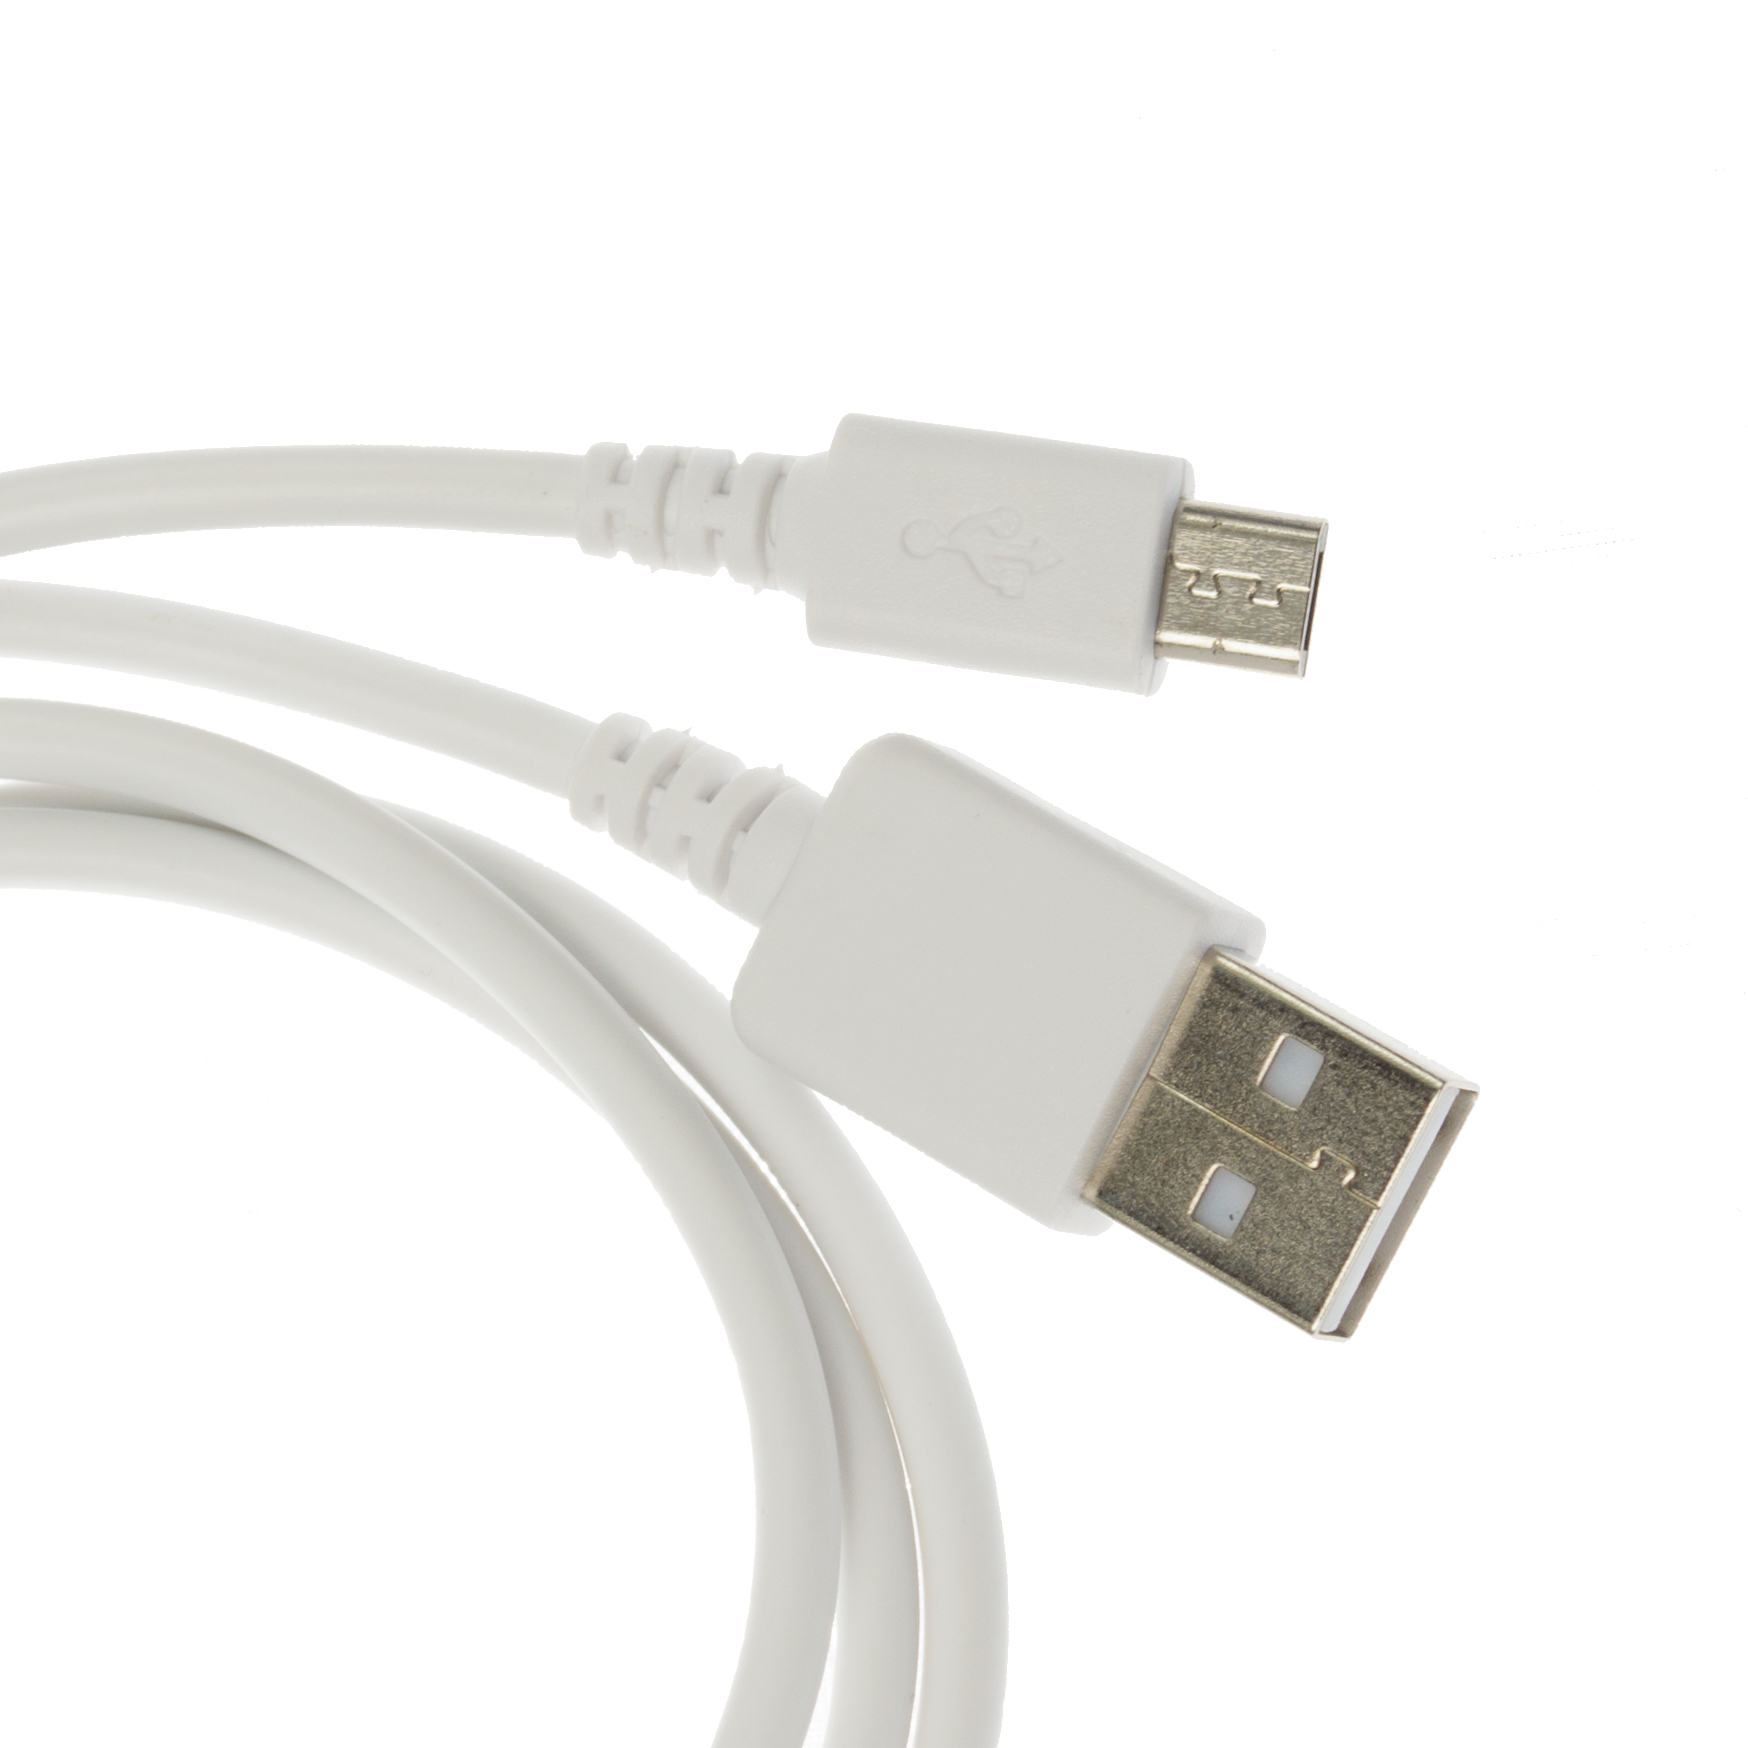 90cm-USB-White-Charger-Power-Cable-for-D-Link-EyeOn-Camera-DCS-825L-Baby-Monitor miniatuur 4